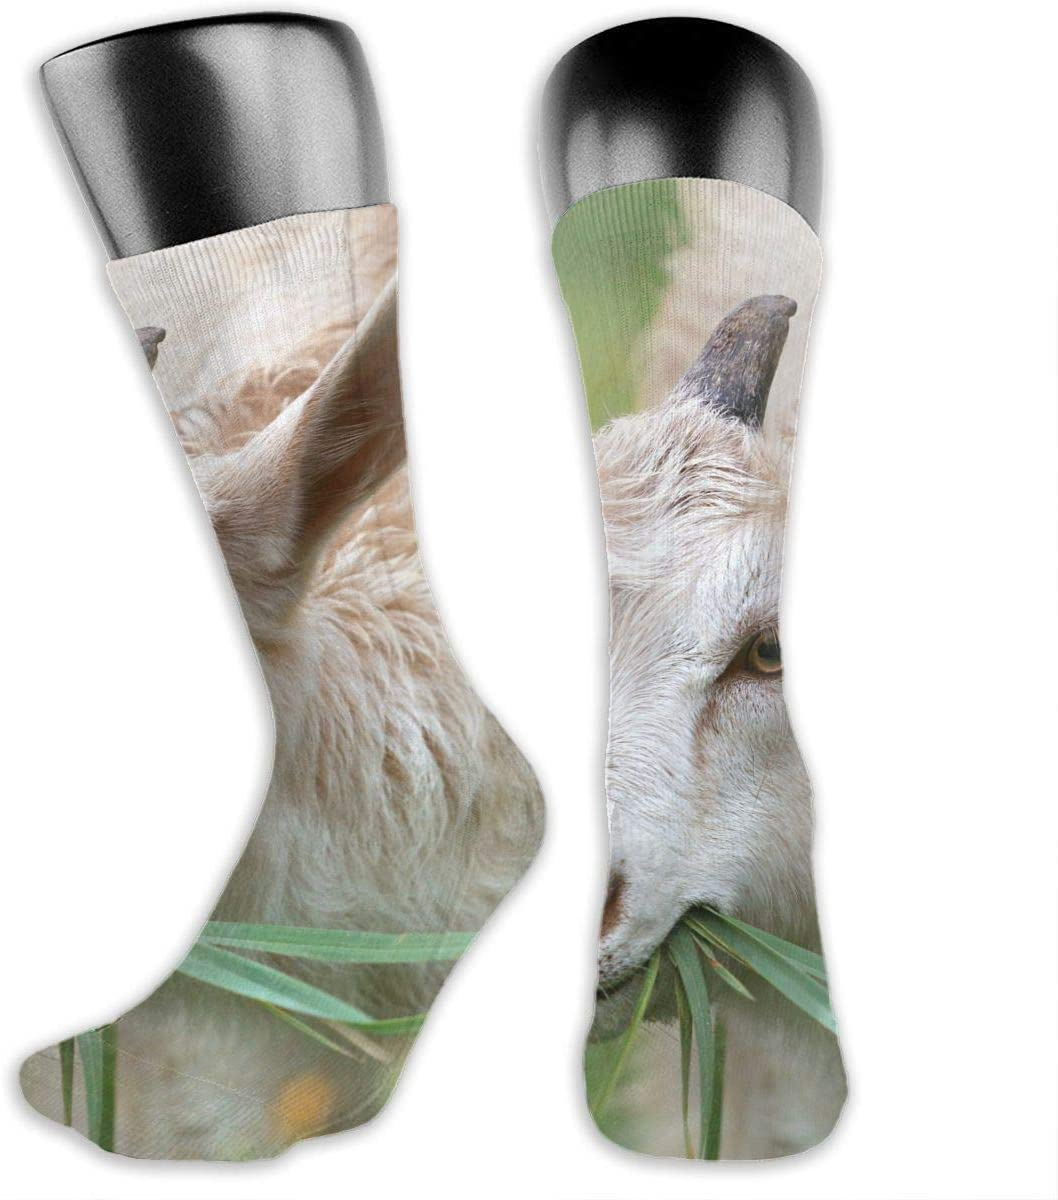 OLGCZM Goat Men Womens Thin High Ankle Casual Socks Fit Outdoor Hiking Trail